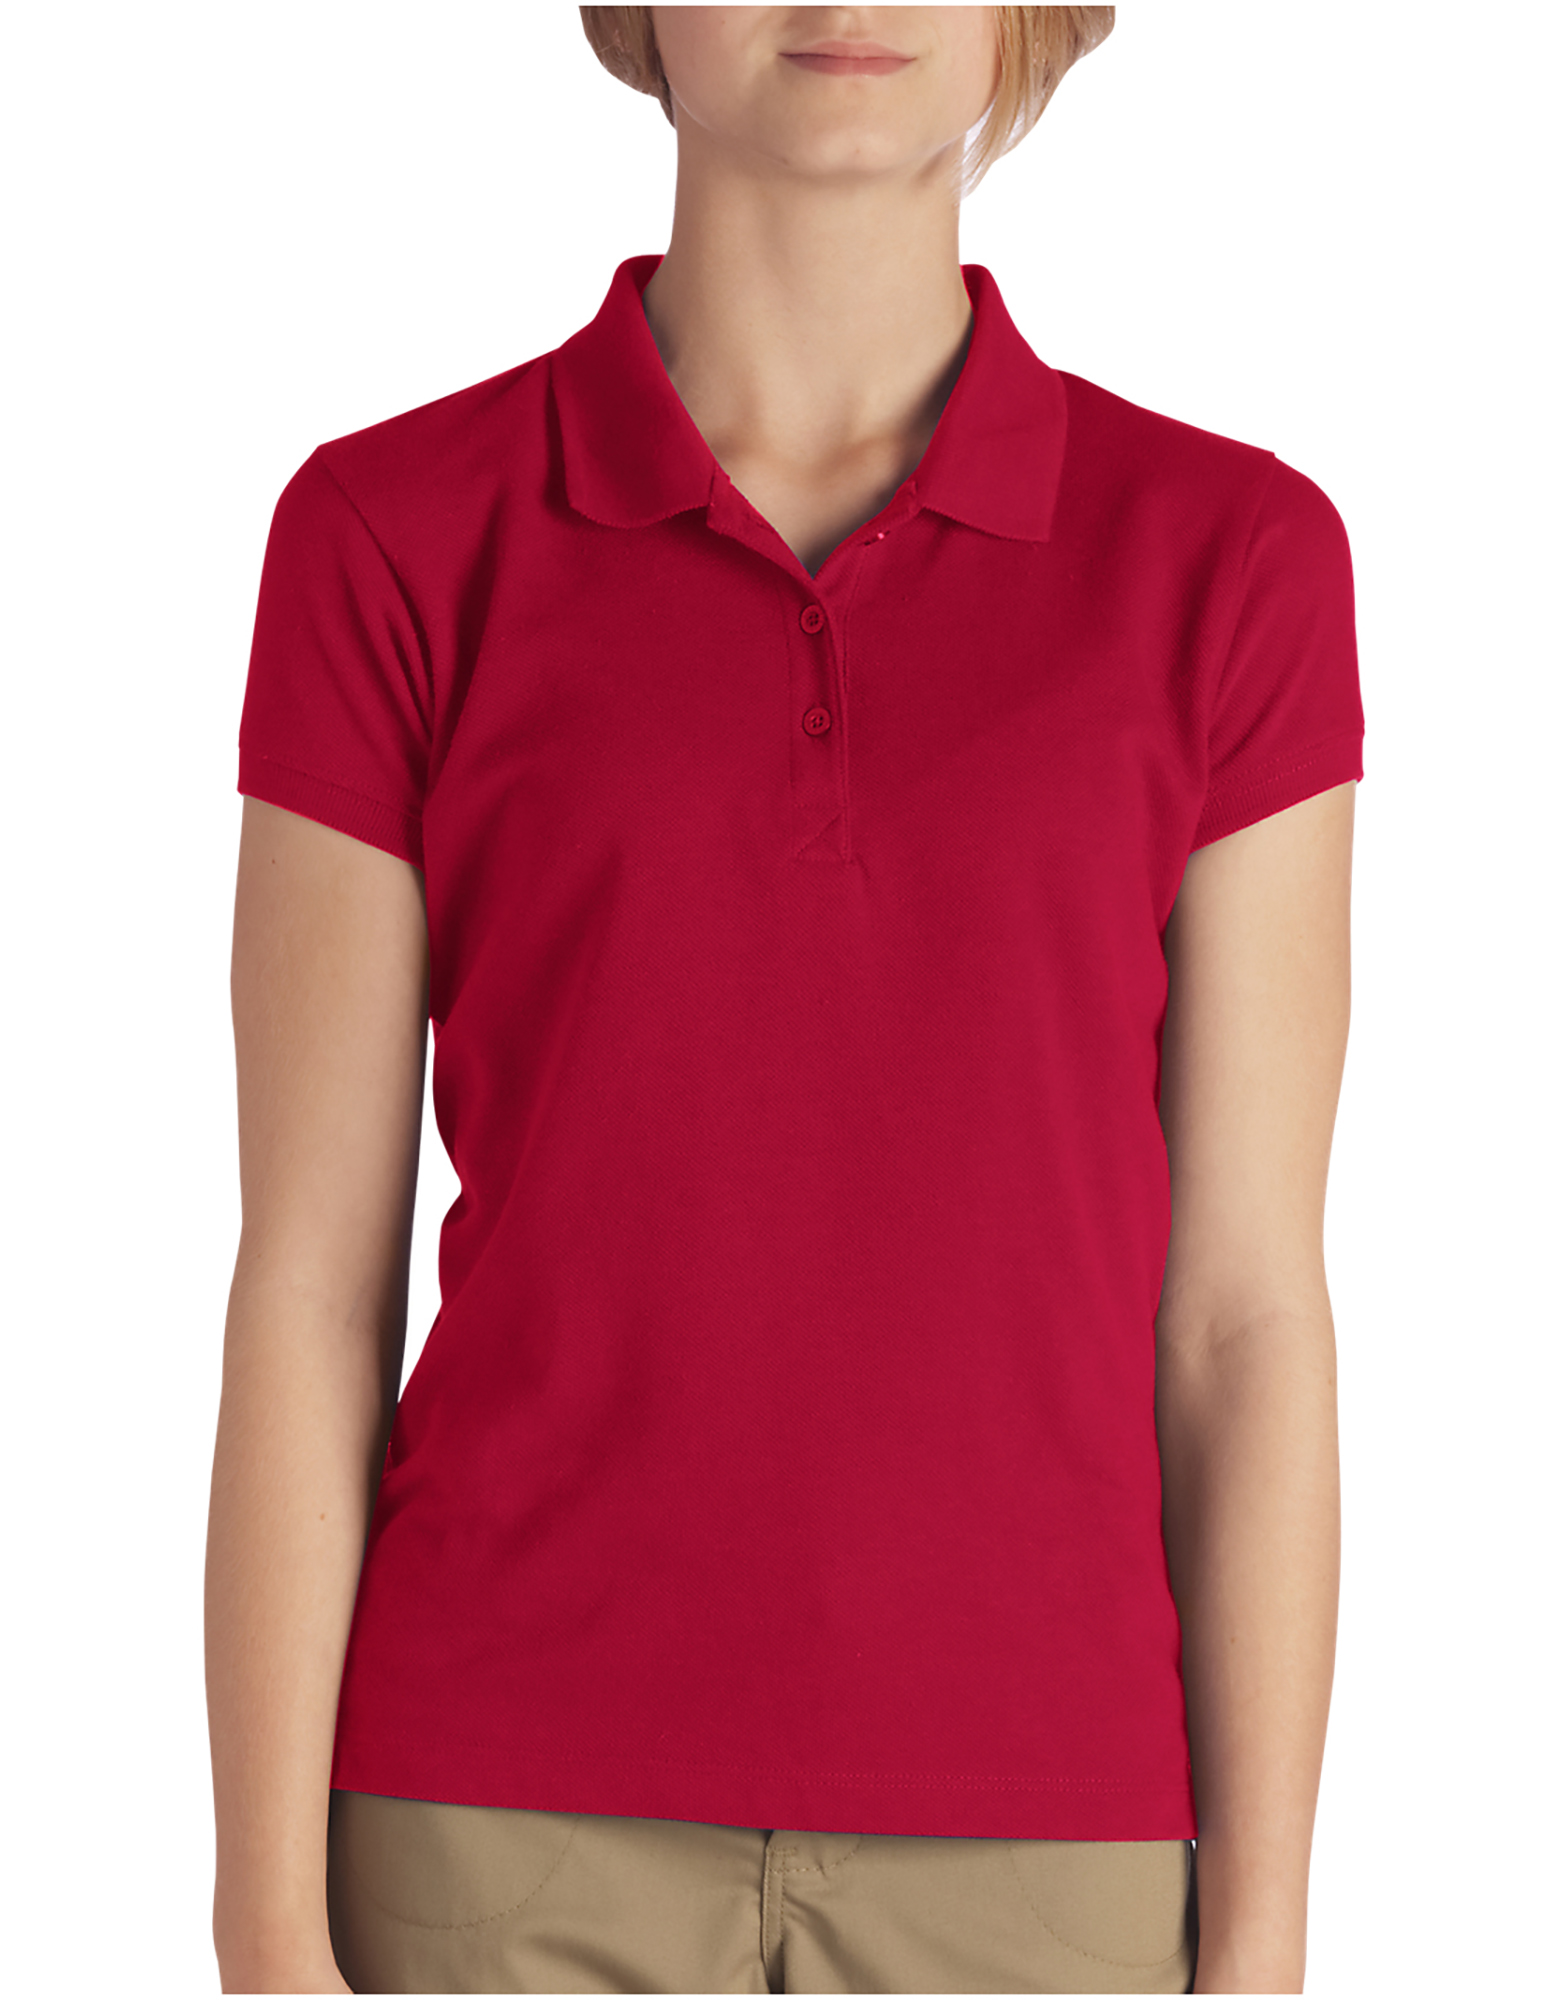 Girls' Short Sleeve Pique Polo Shirt, 4-6 - English Red (ER)